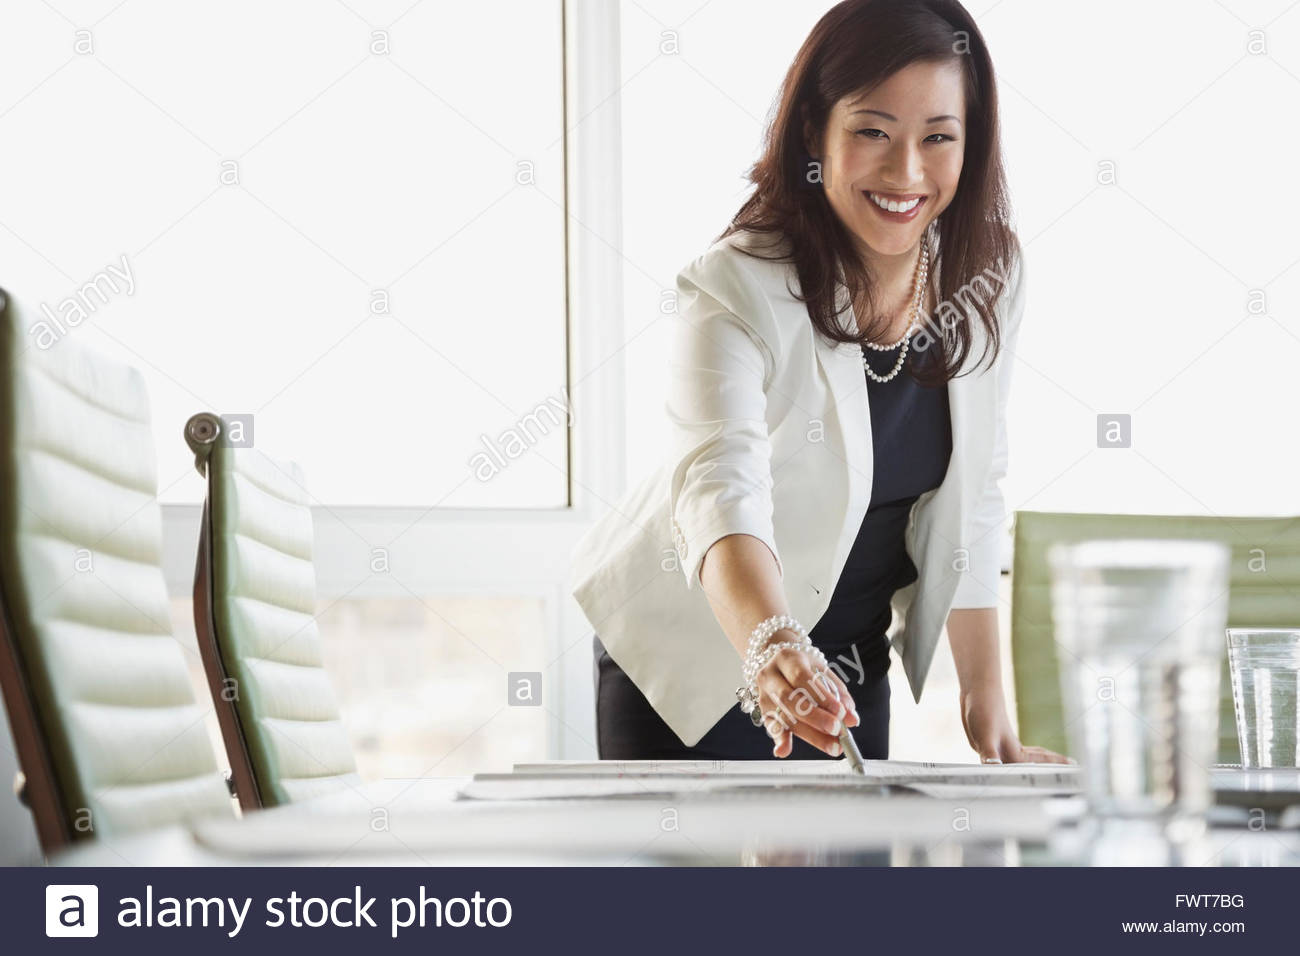 Portrait of businesswoman reviewing blueprint at conference table - Stock Image